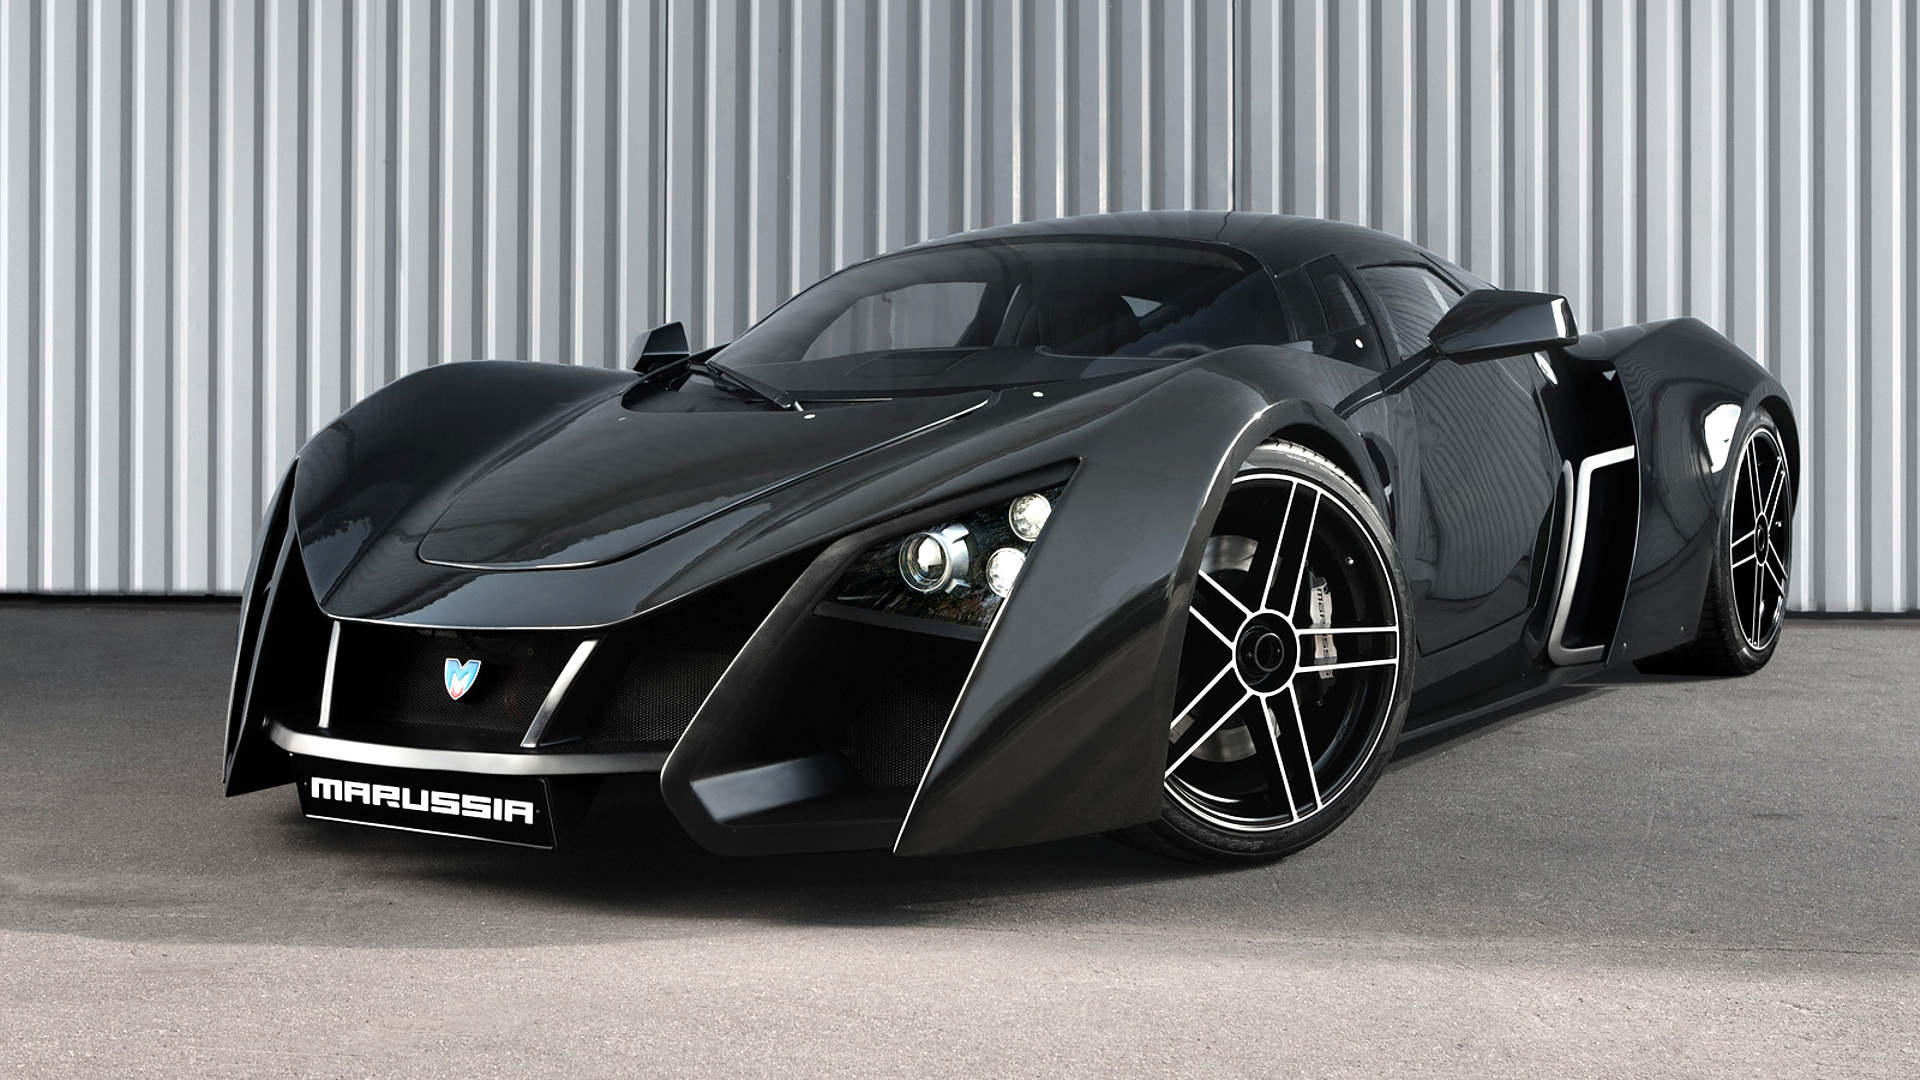 Charming Marussia, Sports Car, Black